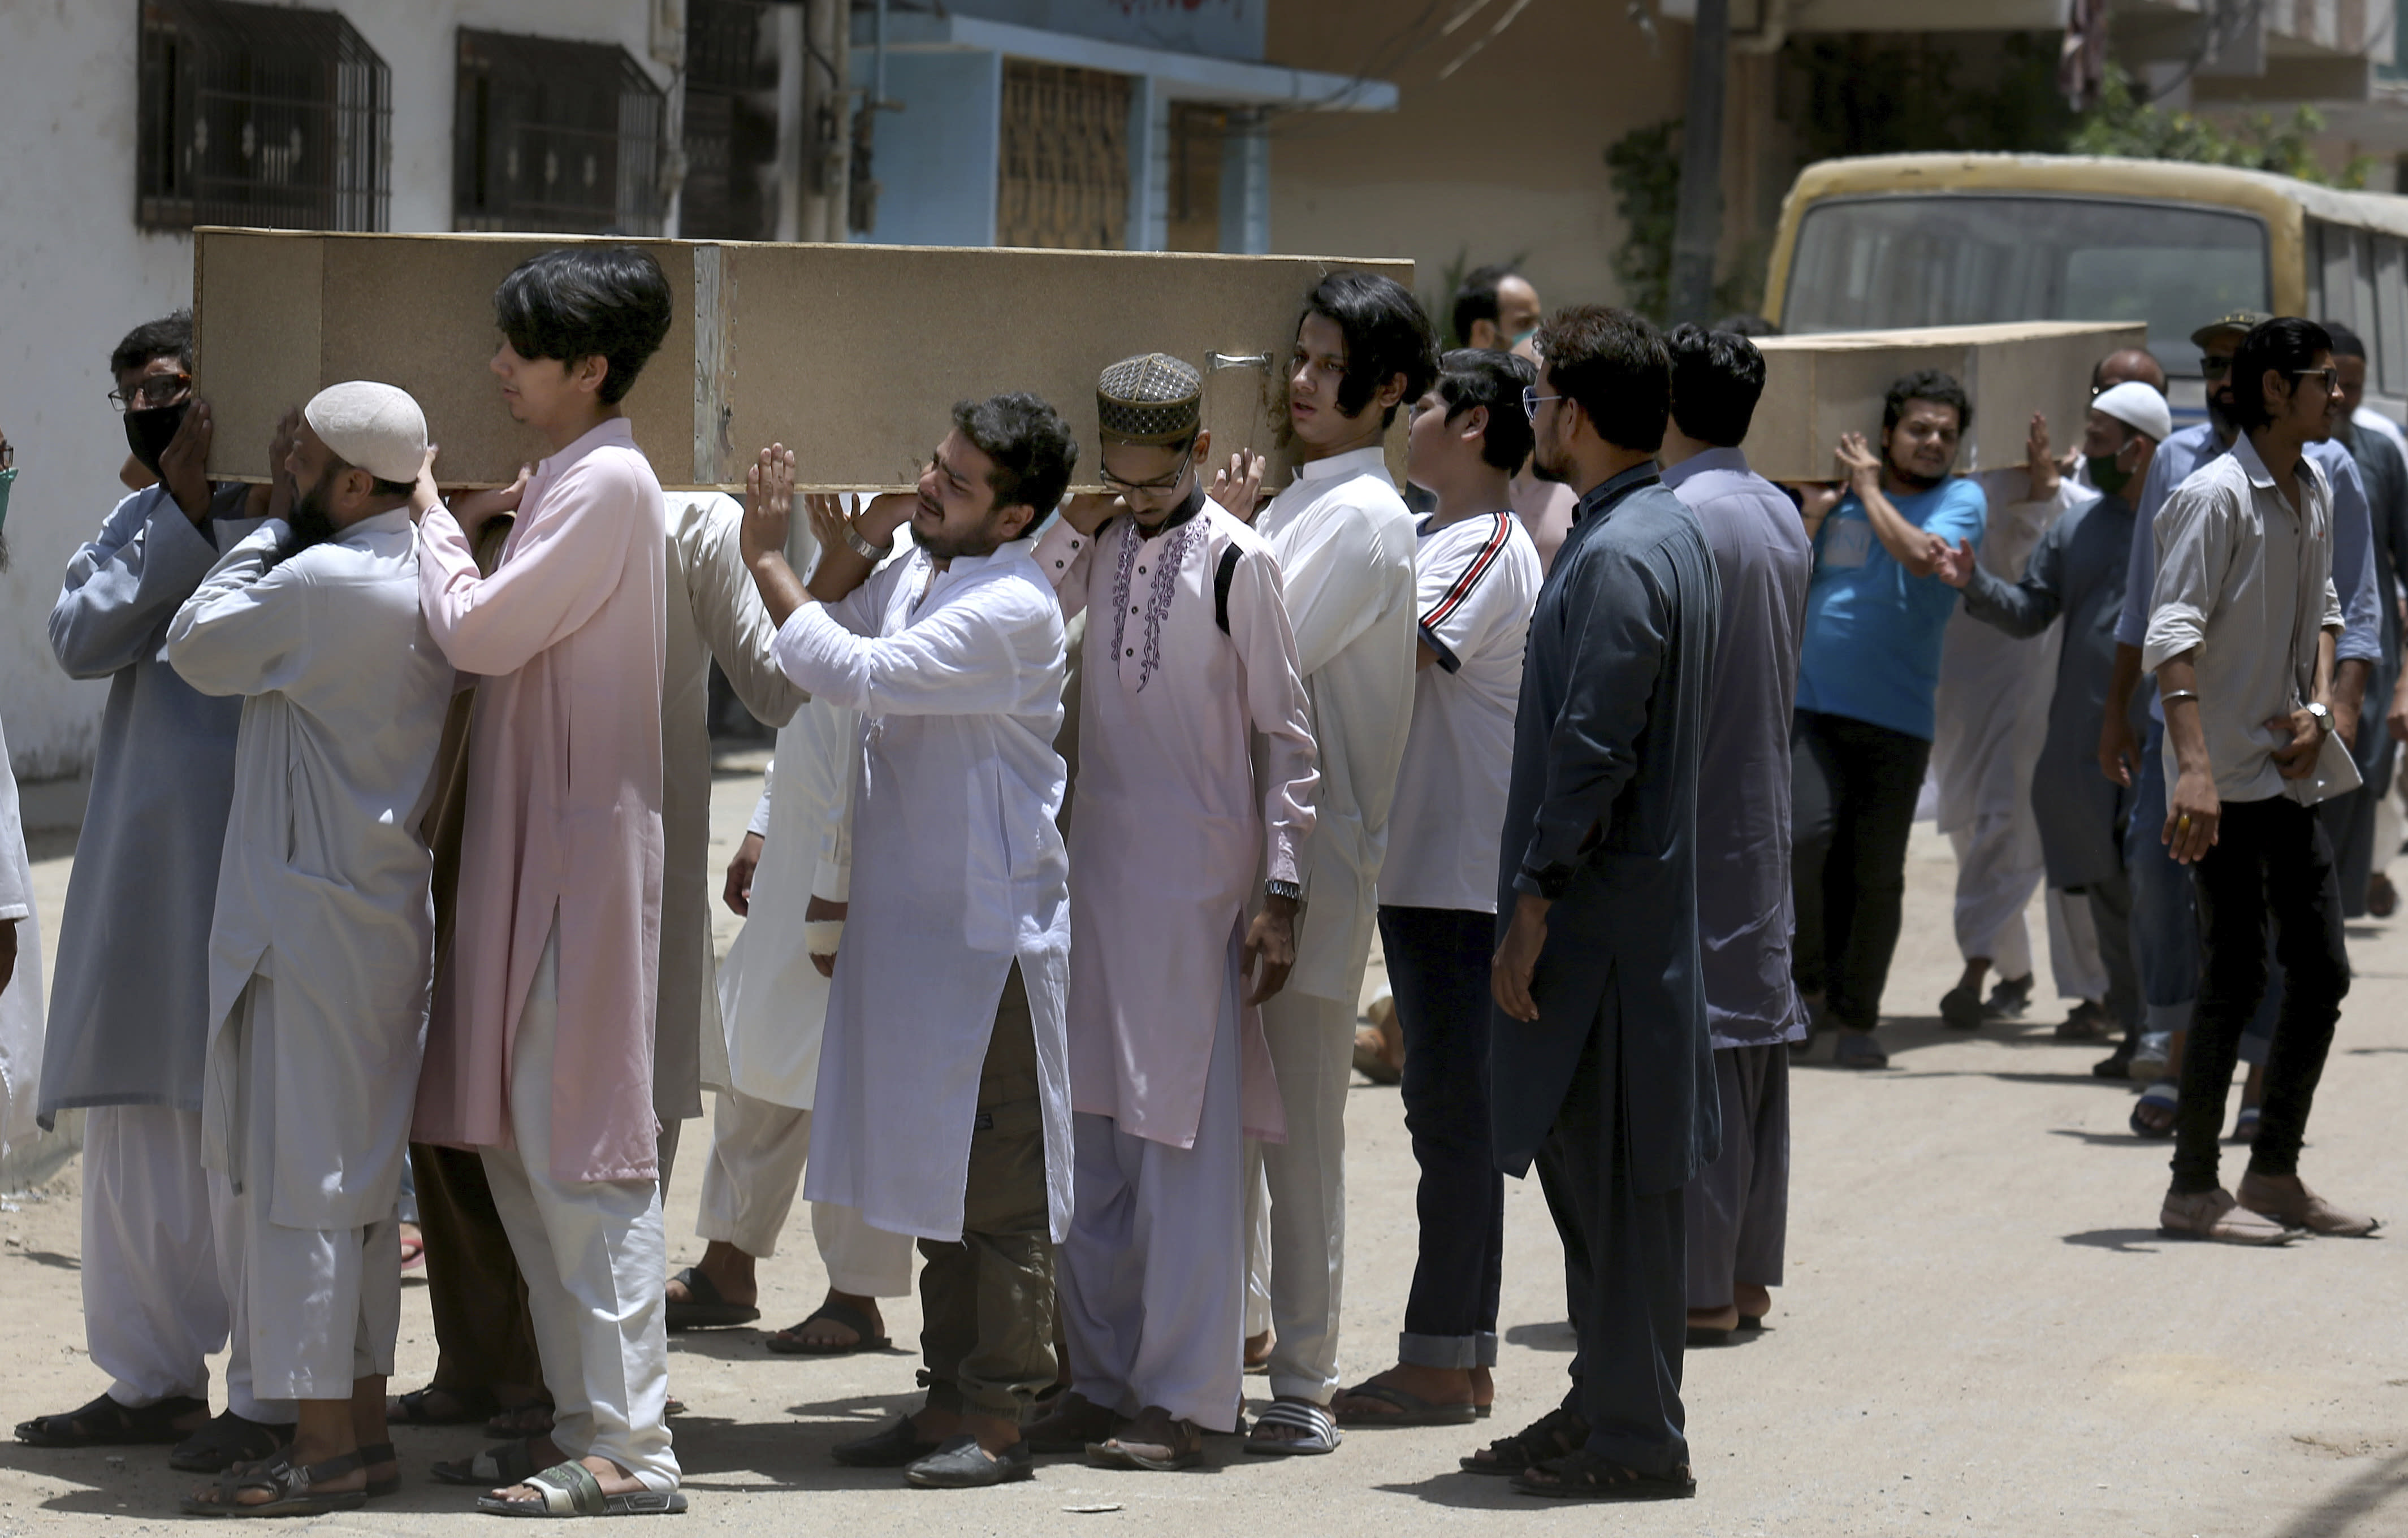 People carry the casket of the victims of Friday's plane crash for funeral prayers in Karachi, Pakistan, Saturday, May 23, 2020. An aviation official says a passenger plane belonging to state-run Pakistan International Airlines carrying passengers and crew has crashed near the southern port city of Karachi. (AP Photo/Fareed Khan)